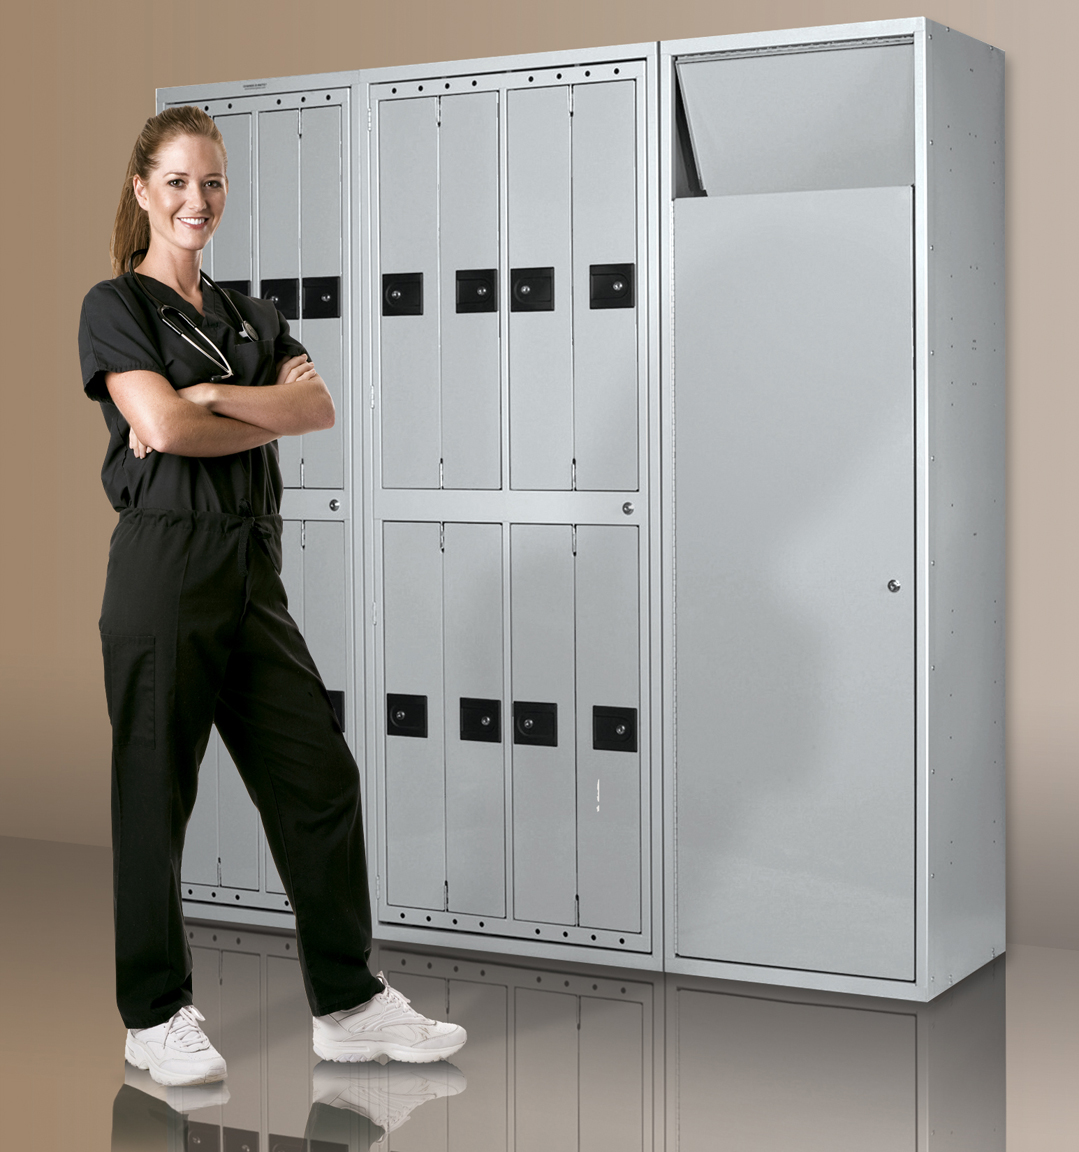 Penco Lockers | Lockers Manufacturers | Replacement Locks For Lockers